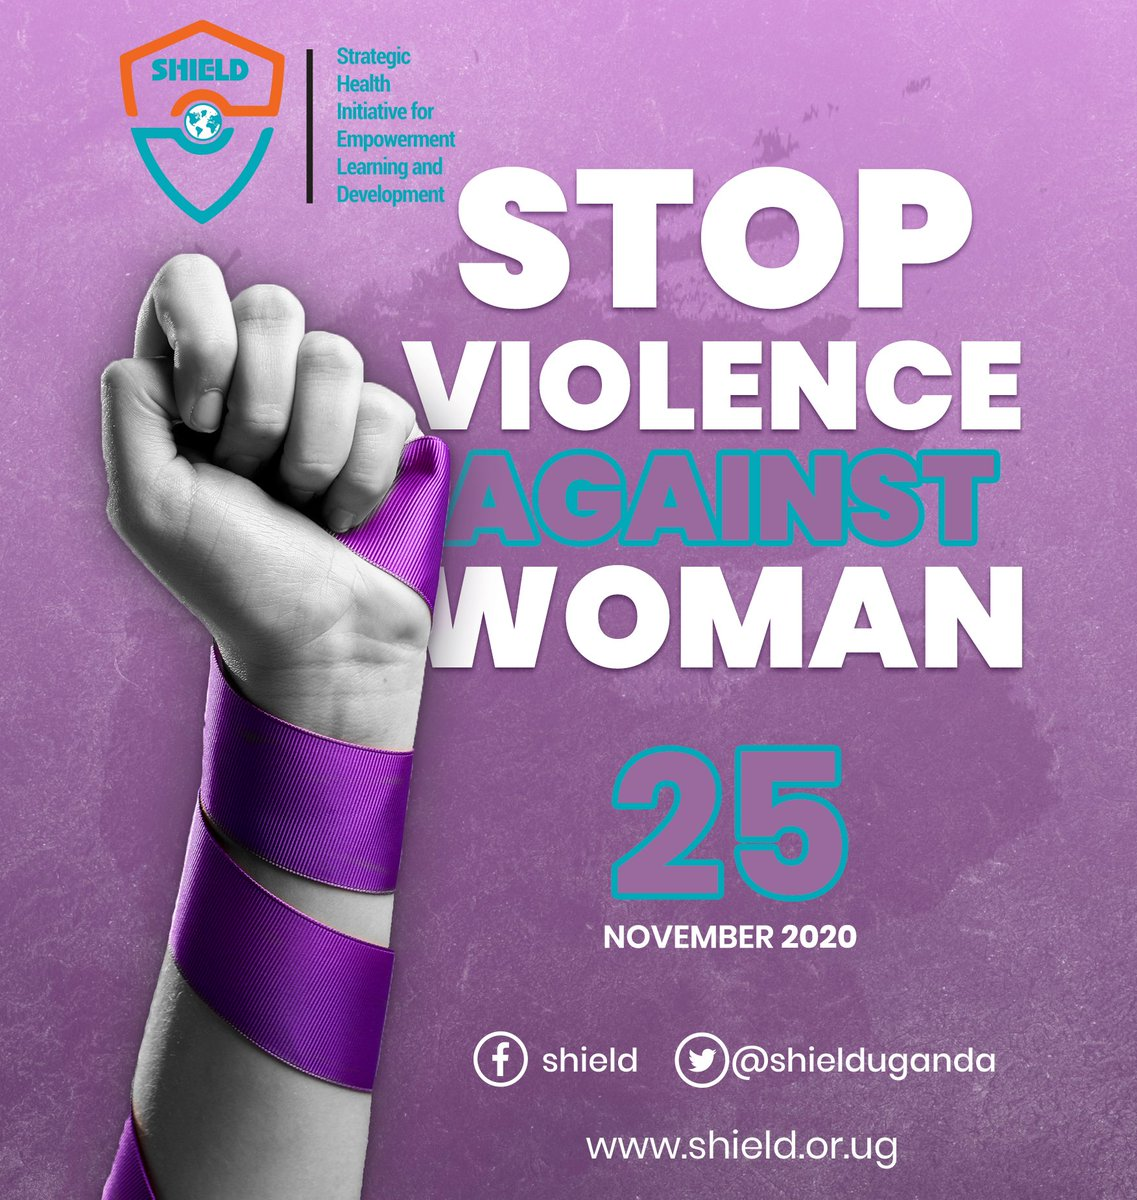 For 16 Days SHIELD is celebrating the inspiring stories of women including those who are women human rights defenders and civil society actors working to mitigate the troubling impact of COVID-19 on women's rights and freedoms #16Days #16DaysOfActivism #Equality #GBV #GlobalGoals